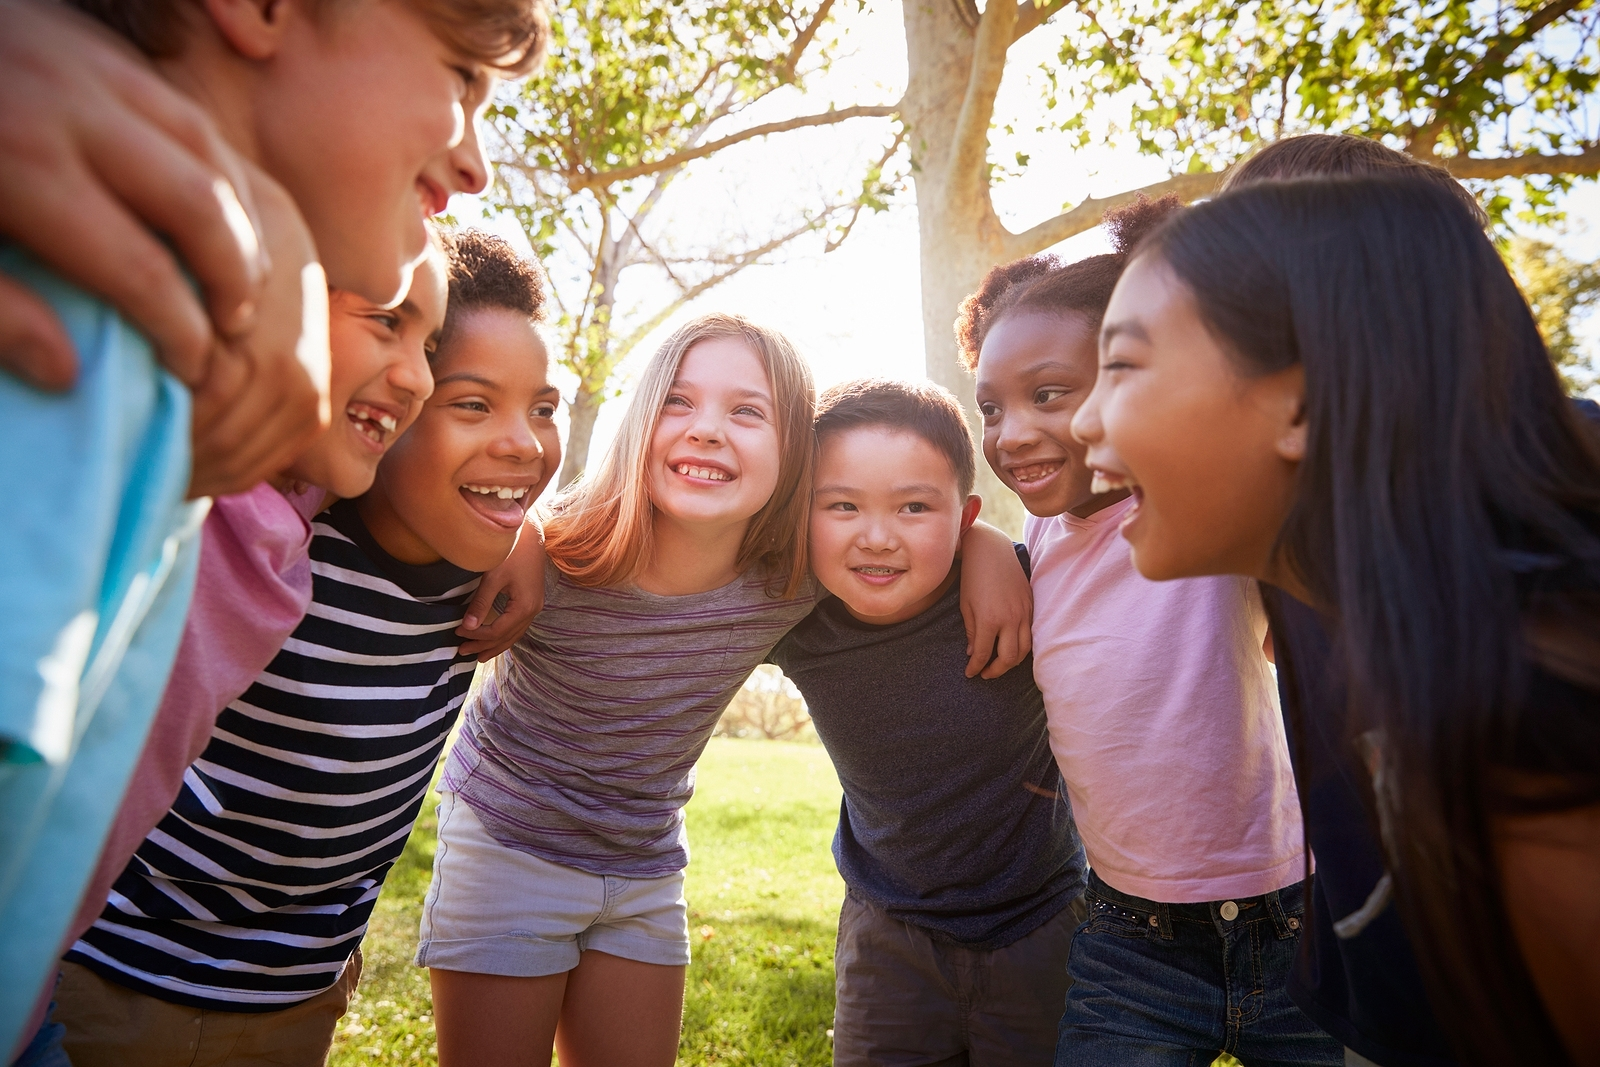 Group of children huddle as they smile at one another. They are part of Banana Splits, a children of divorce support group in West Bloomfield, MI. Therapyology offers therapy for children of divorce in West Bloomfield, MI. Contact us to get in touch with a child divorce therapist today.